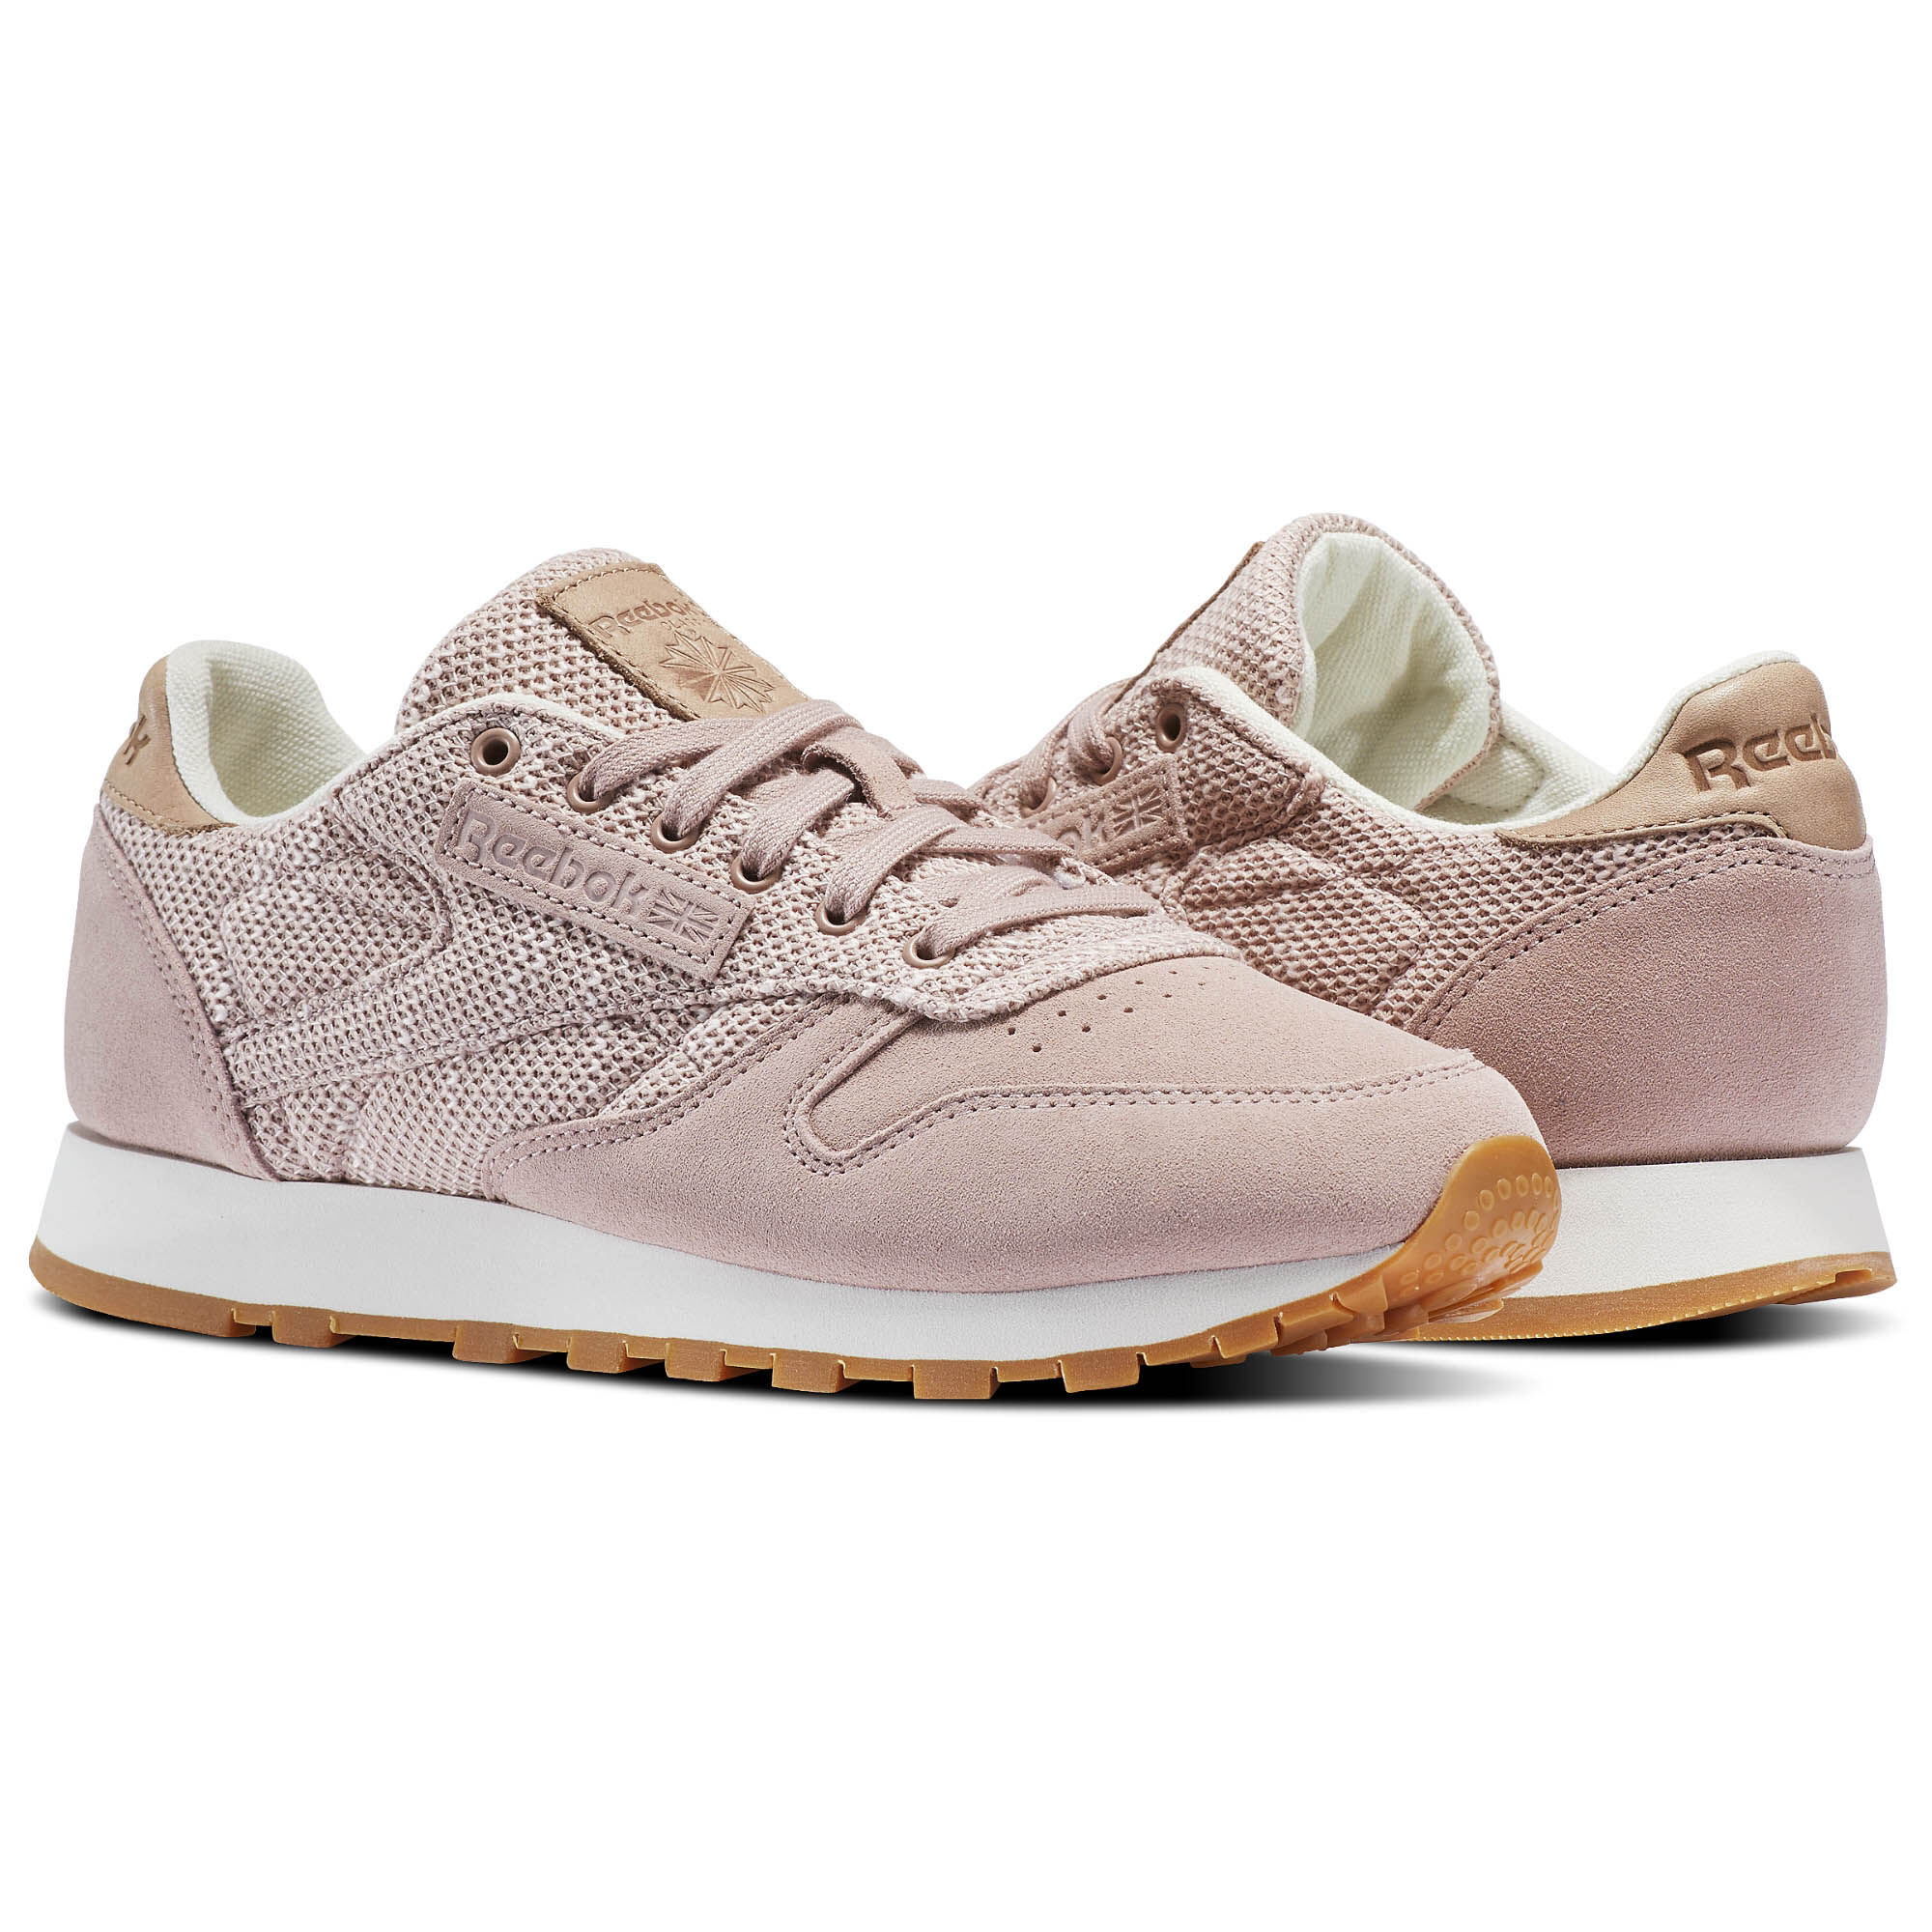 Classic Nubuck Leather Trainers In Pink - Pink Reebok Cheap Price Wholesale Free Shipping 2018 Outlet Store Locations Free Shipping Many Kinds Of Low Shipping Fee Sale Online w0NQEMm